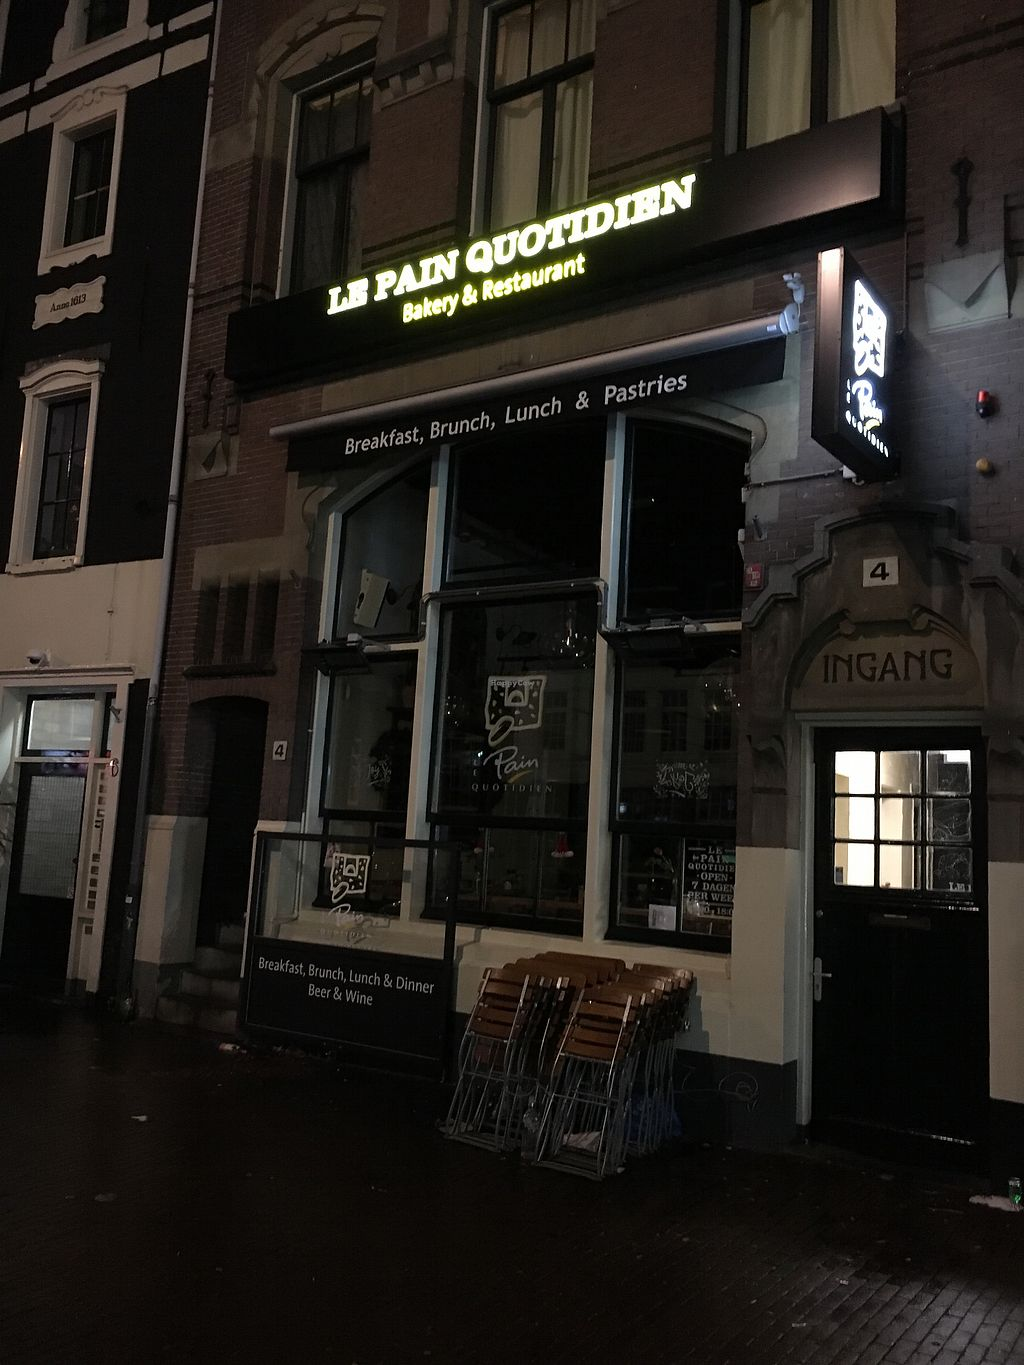 "Photo of Le Pain Quotidien - Nieuwezijds  by <a href=""/members/profile/hack_man"">hack_man</a> <br/>Exterior  <br/> January 2, 2018  - <a href='/contact/abuse/image/84213/341832'>Report</a>"